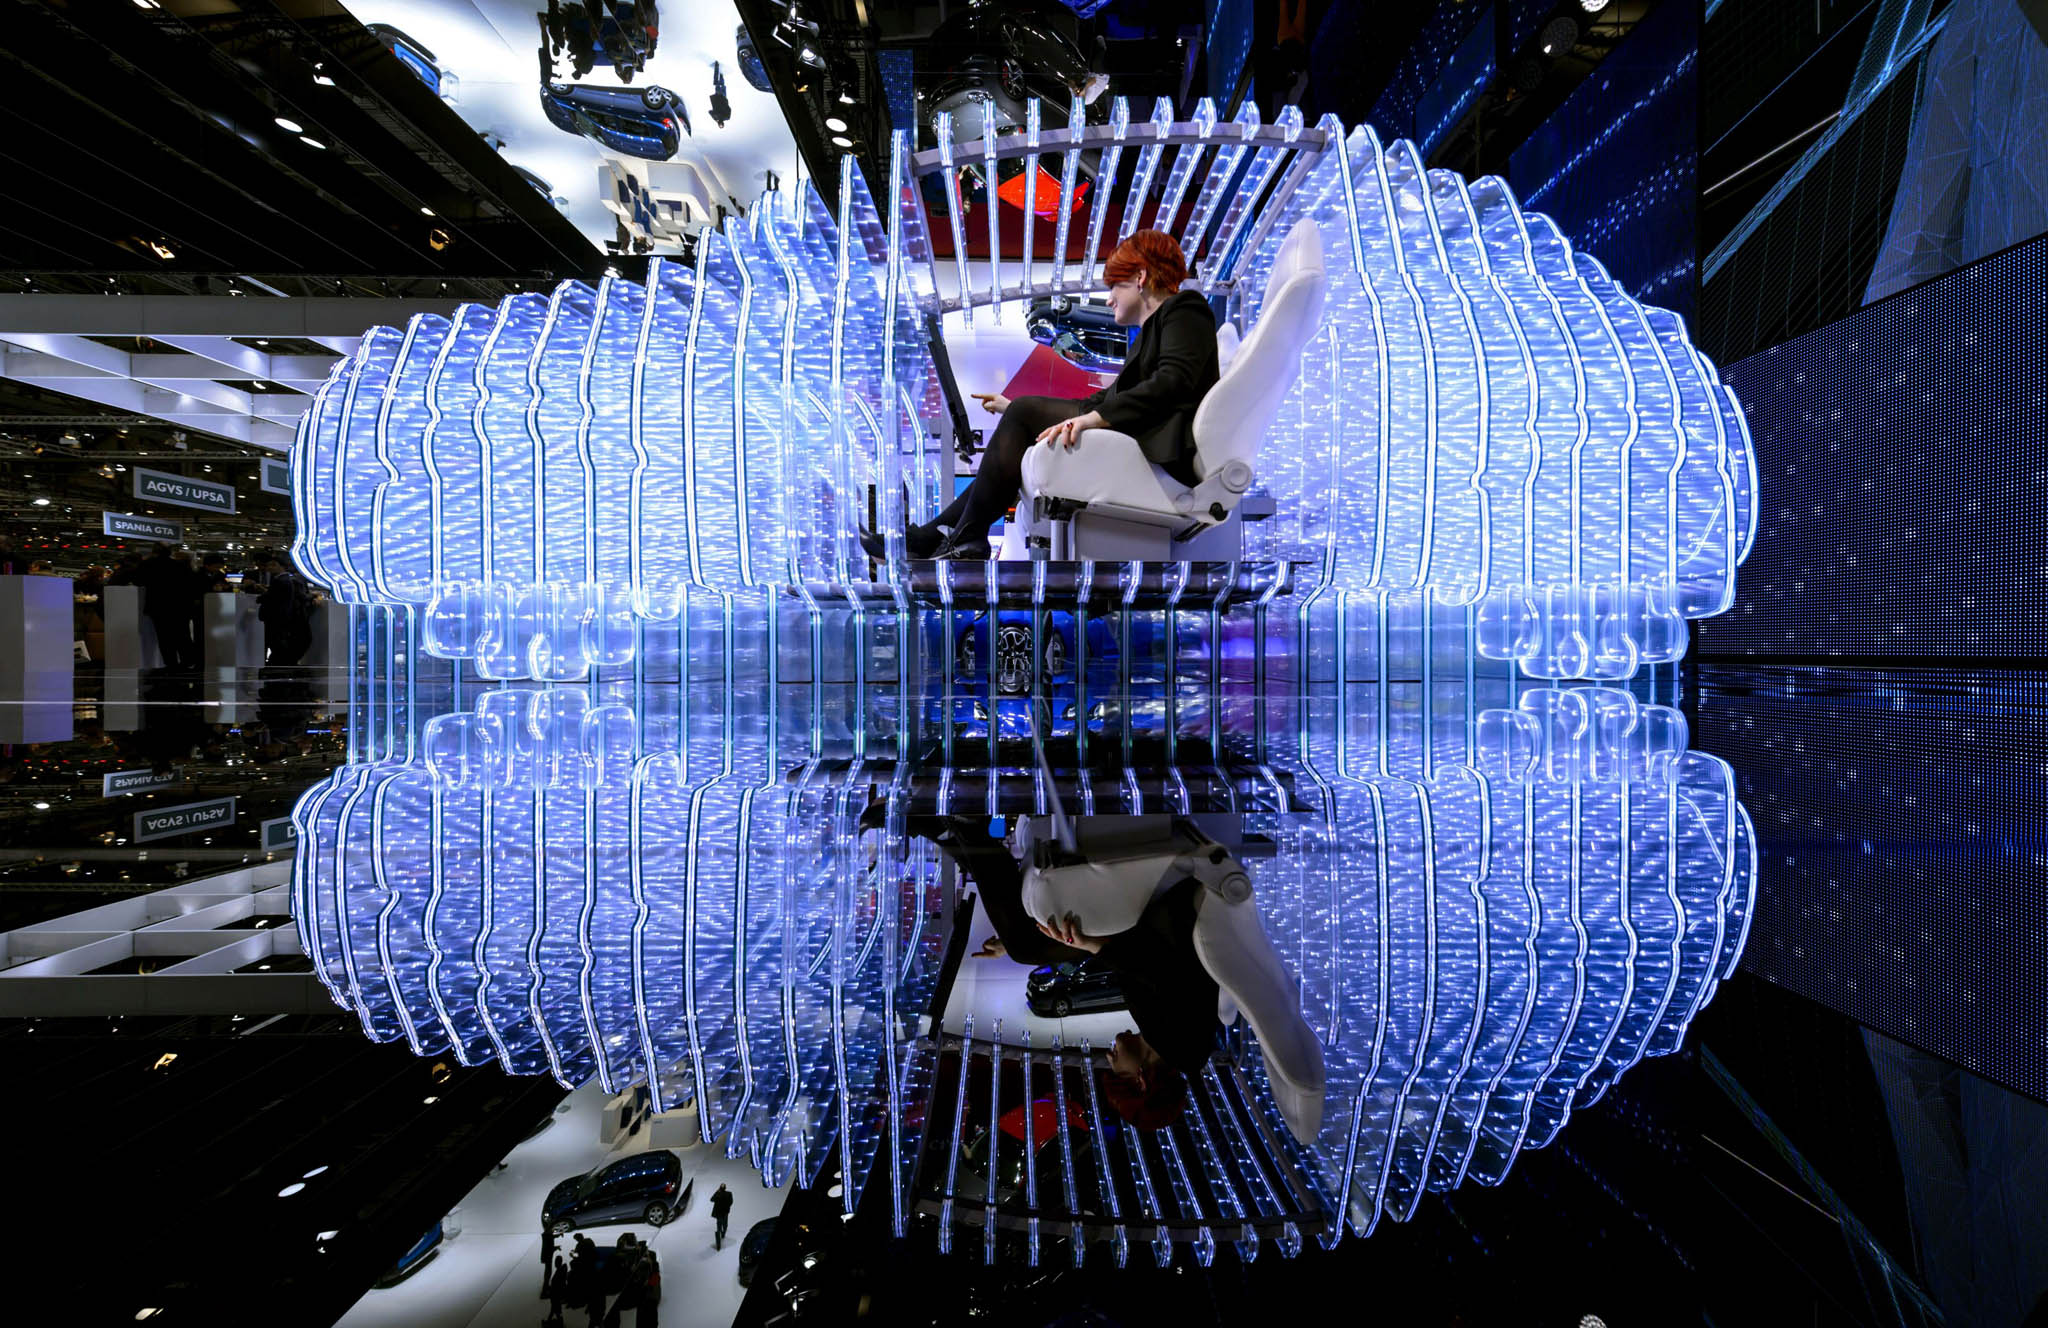 A woman poses inside the mockup of a car at the Opel booth during the press day of the Geneva Car Show